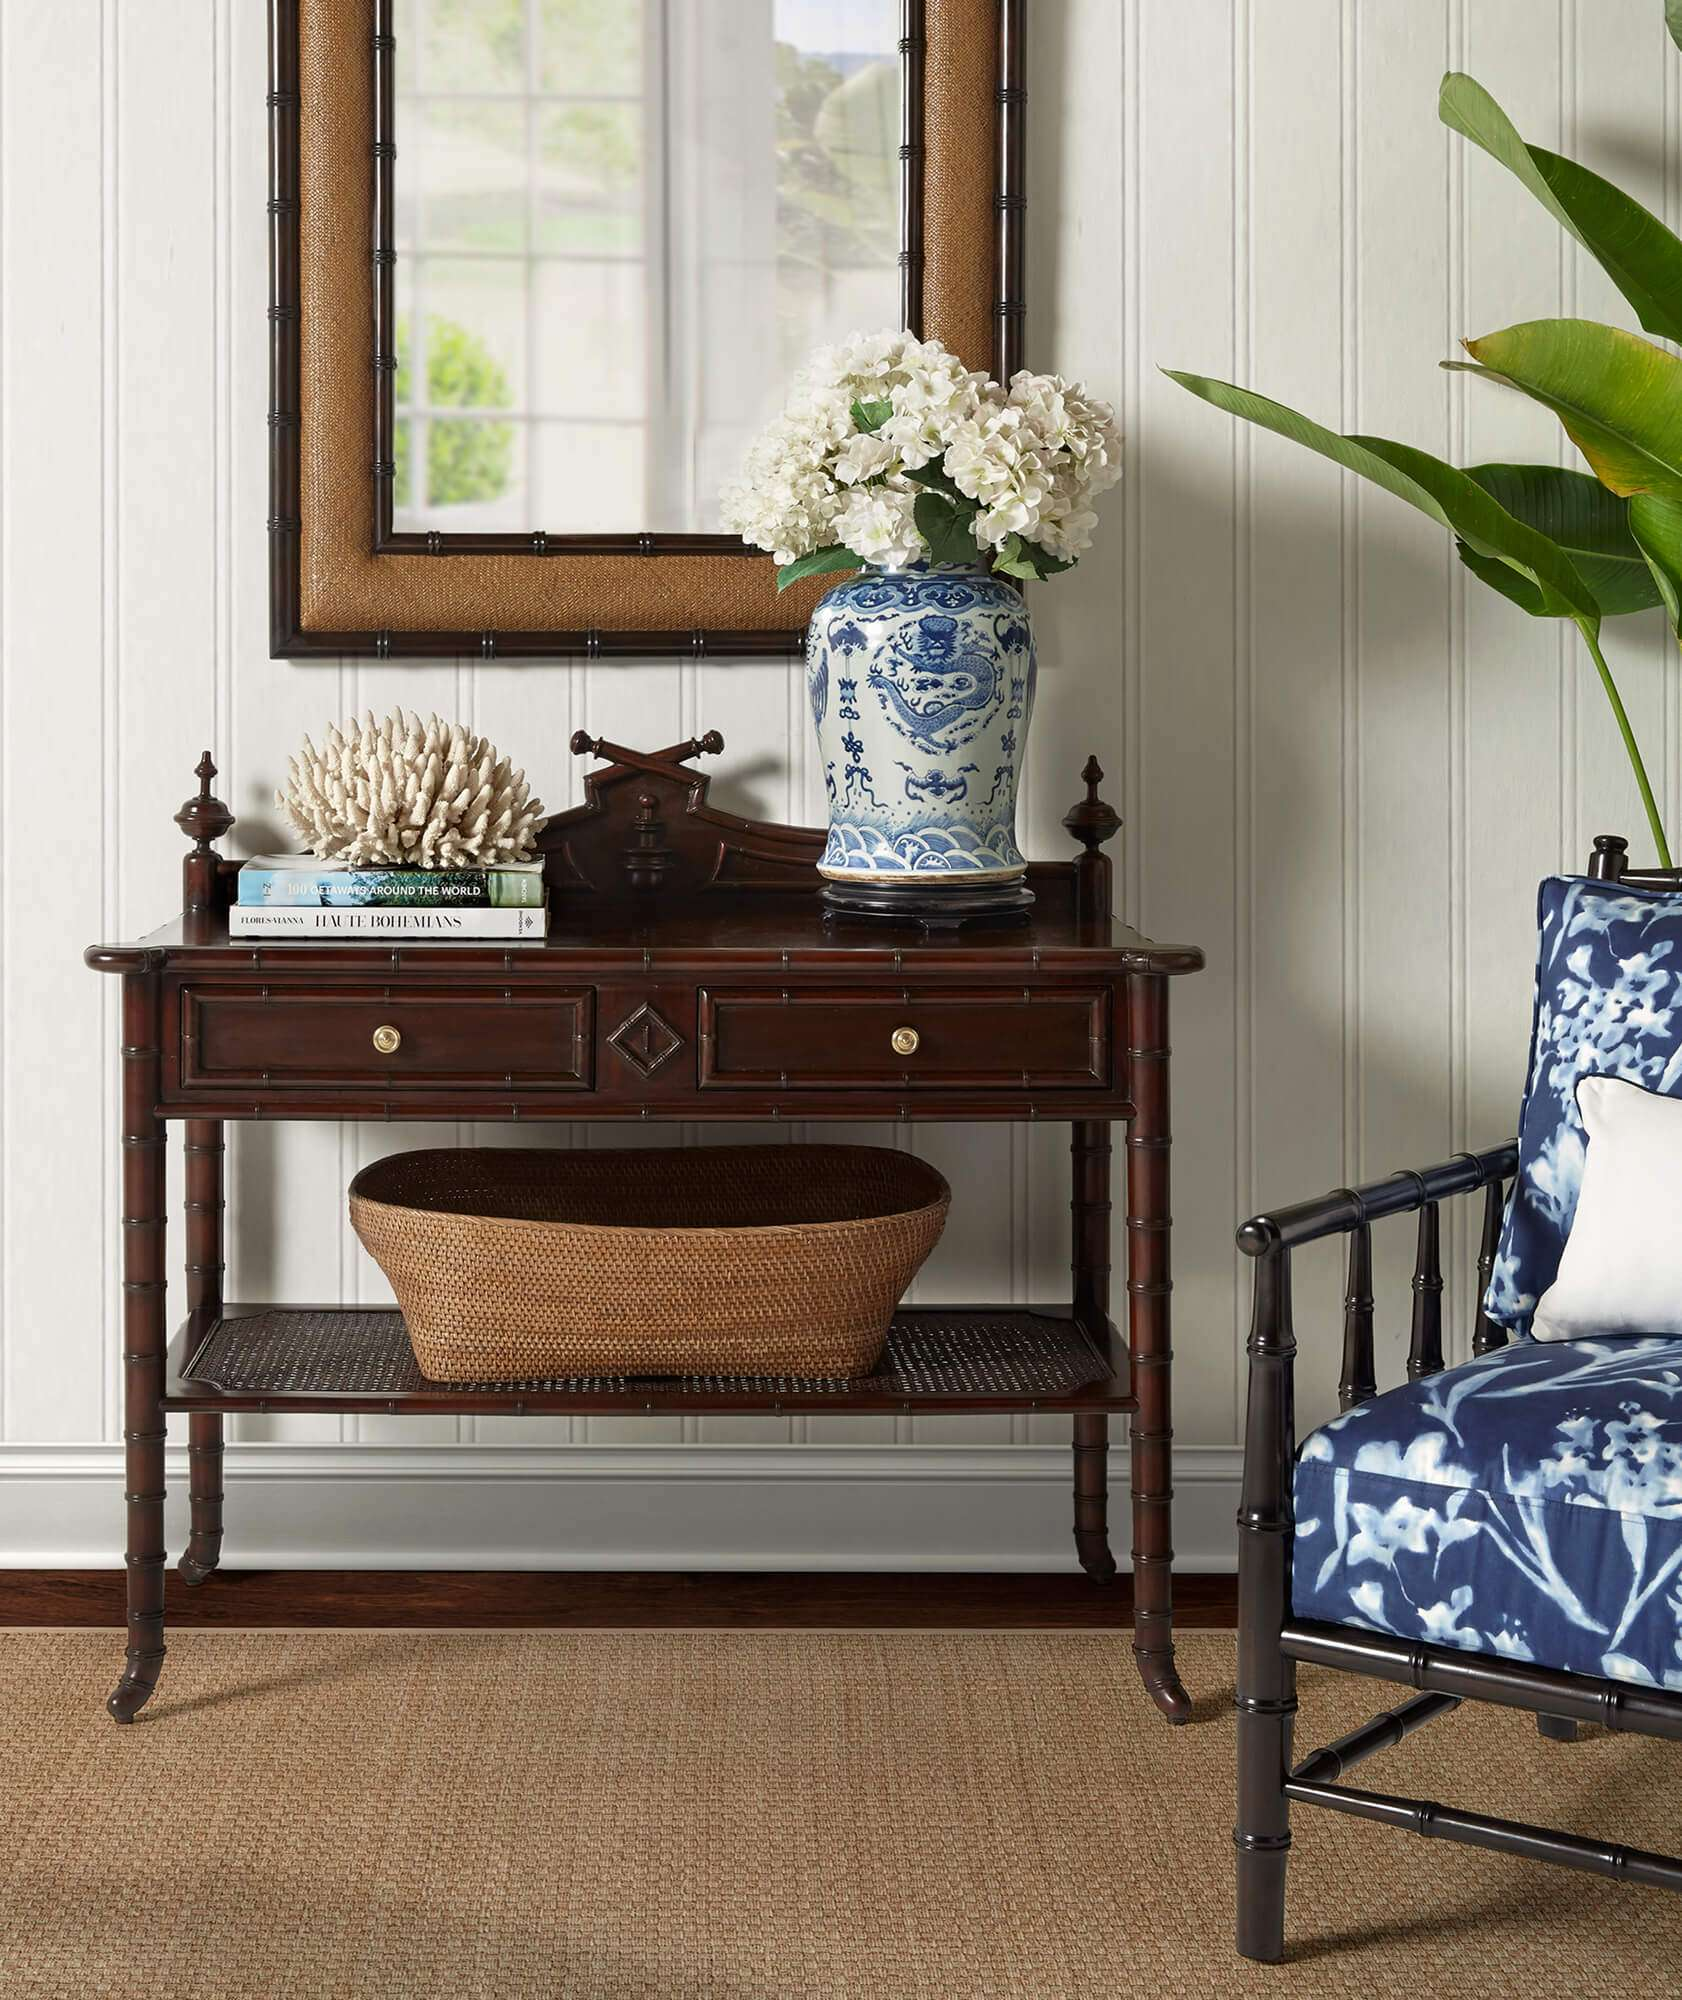 HAND CAPE COLONY CONSOLE - STUART MEMBERY HOME COLLECTION